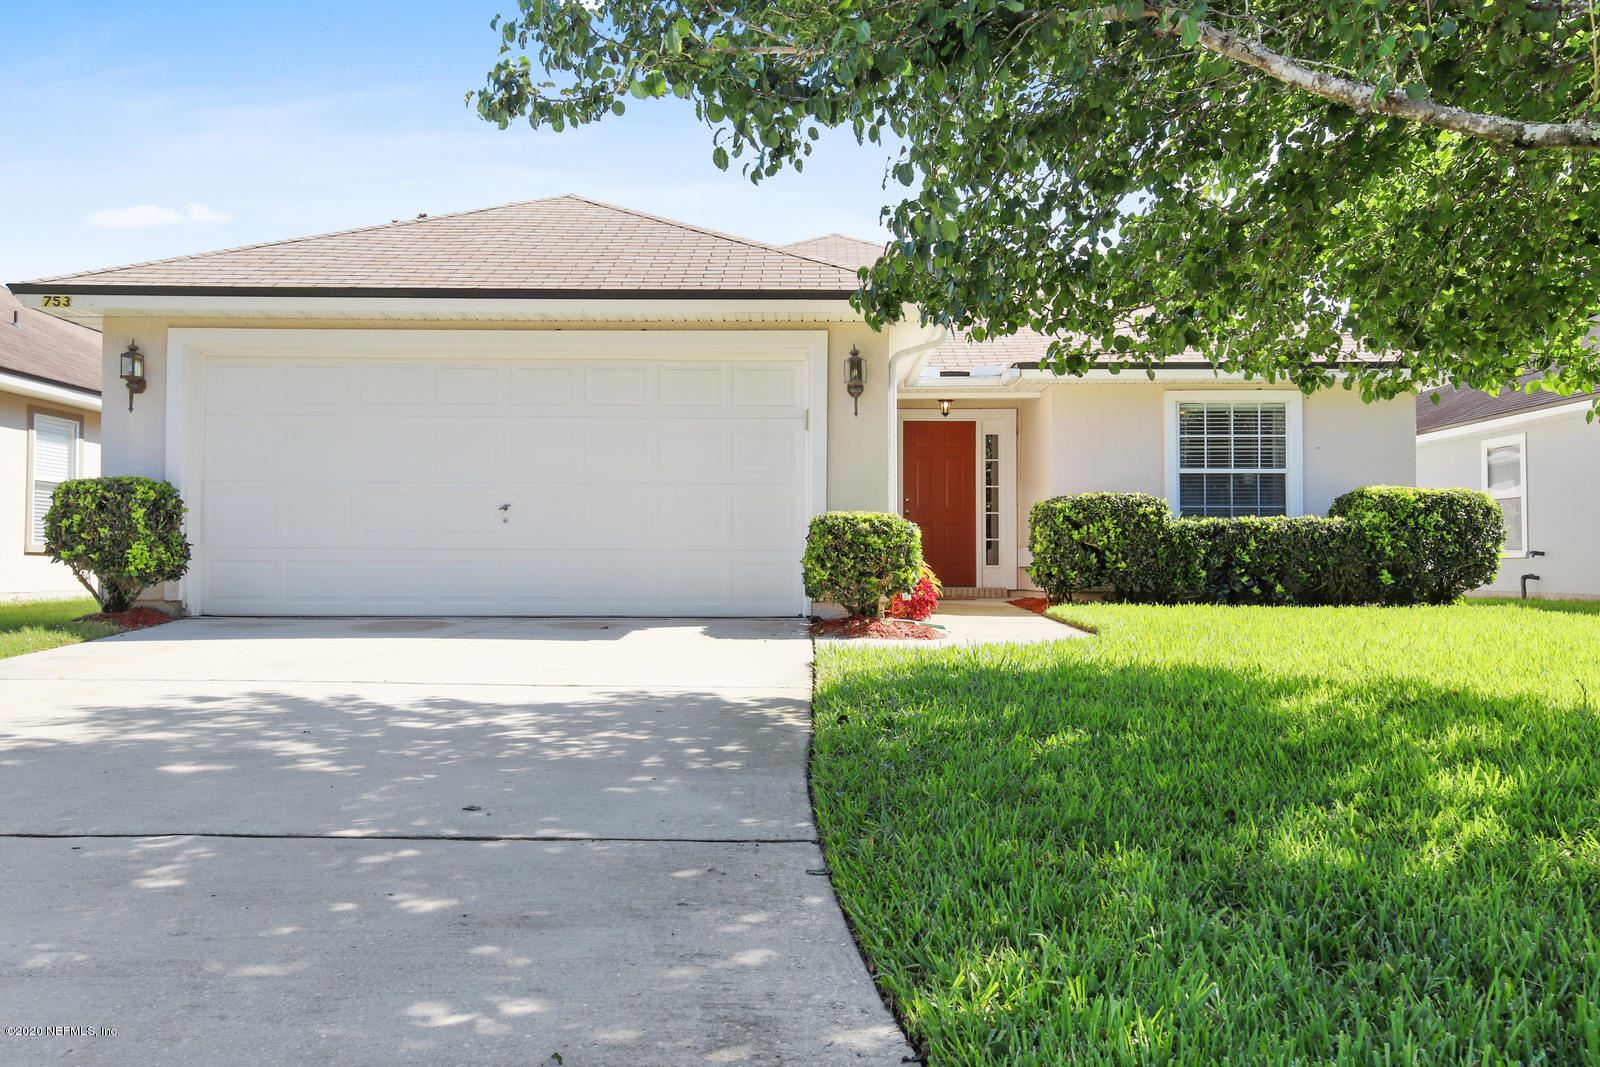 753 S LILAC LOOP #Lot No: 122, Saint Johns, FL 32259 - MLS#: 1059726